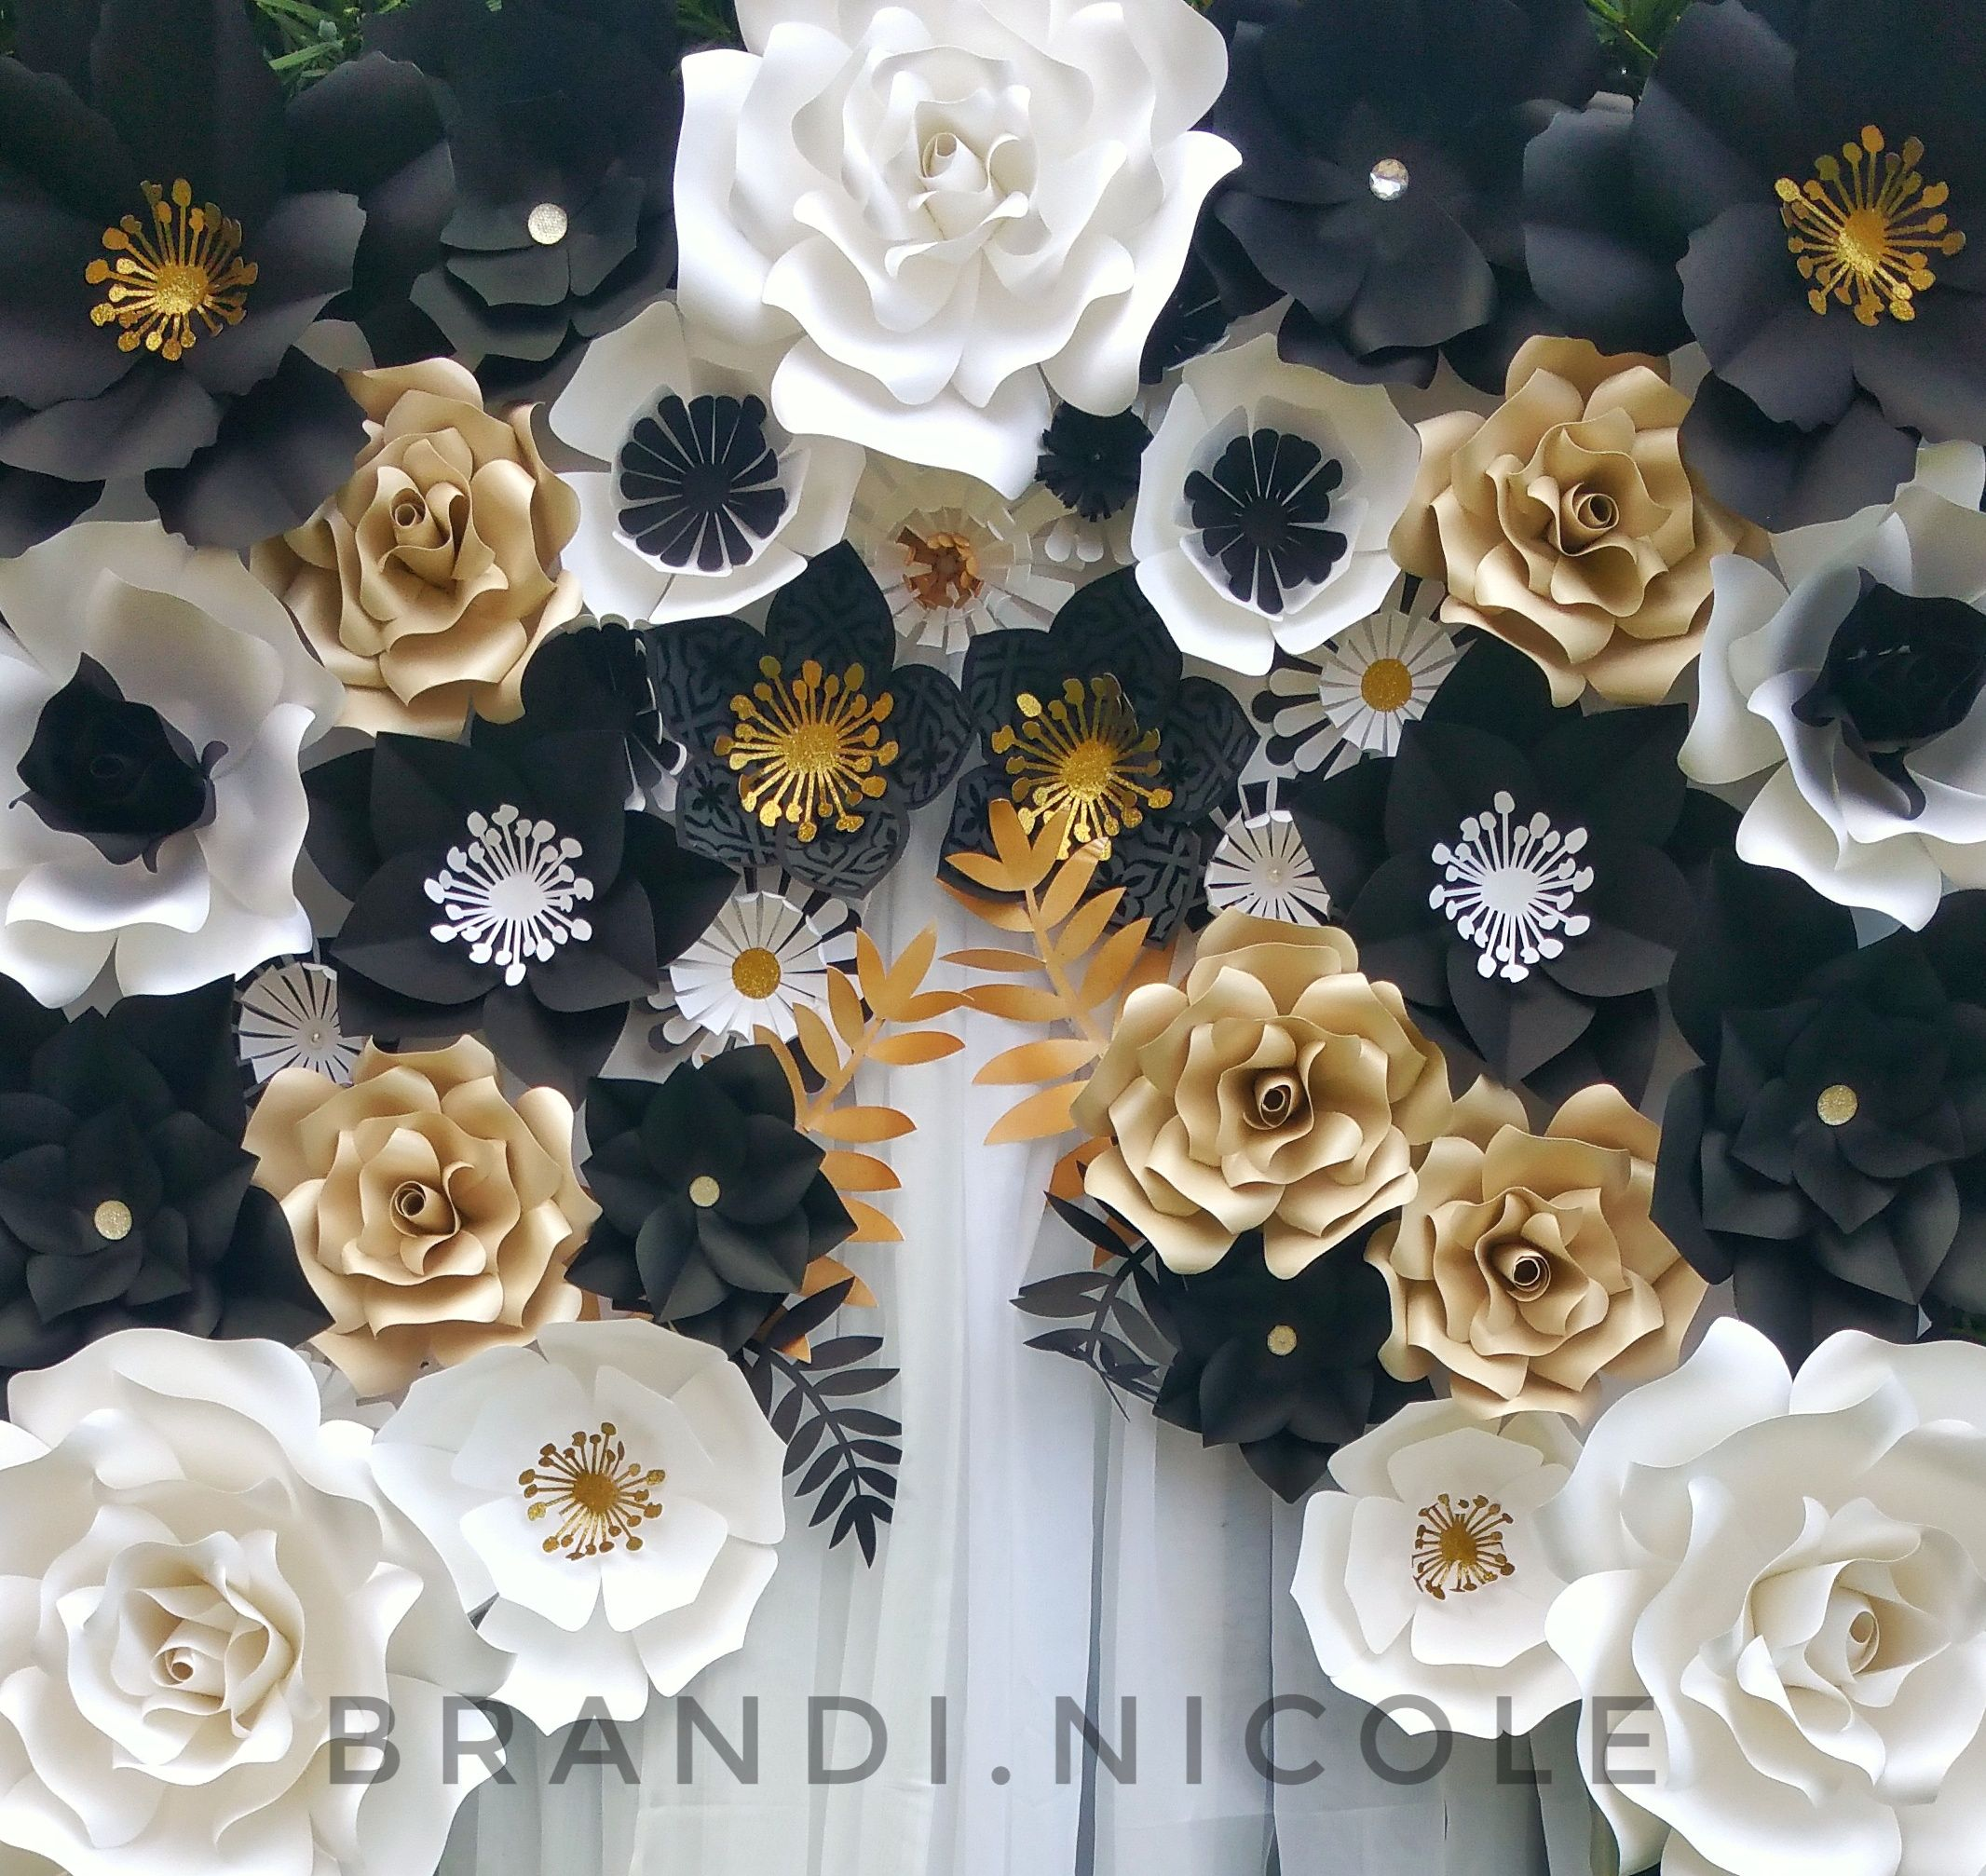 Black White And Gold Giant Paper Flower Backdrop By Brandi Nicole